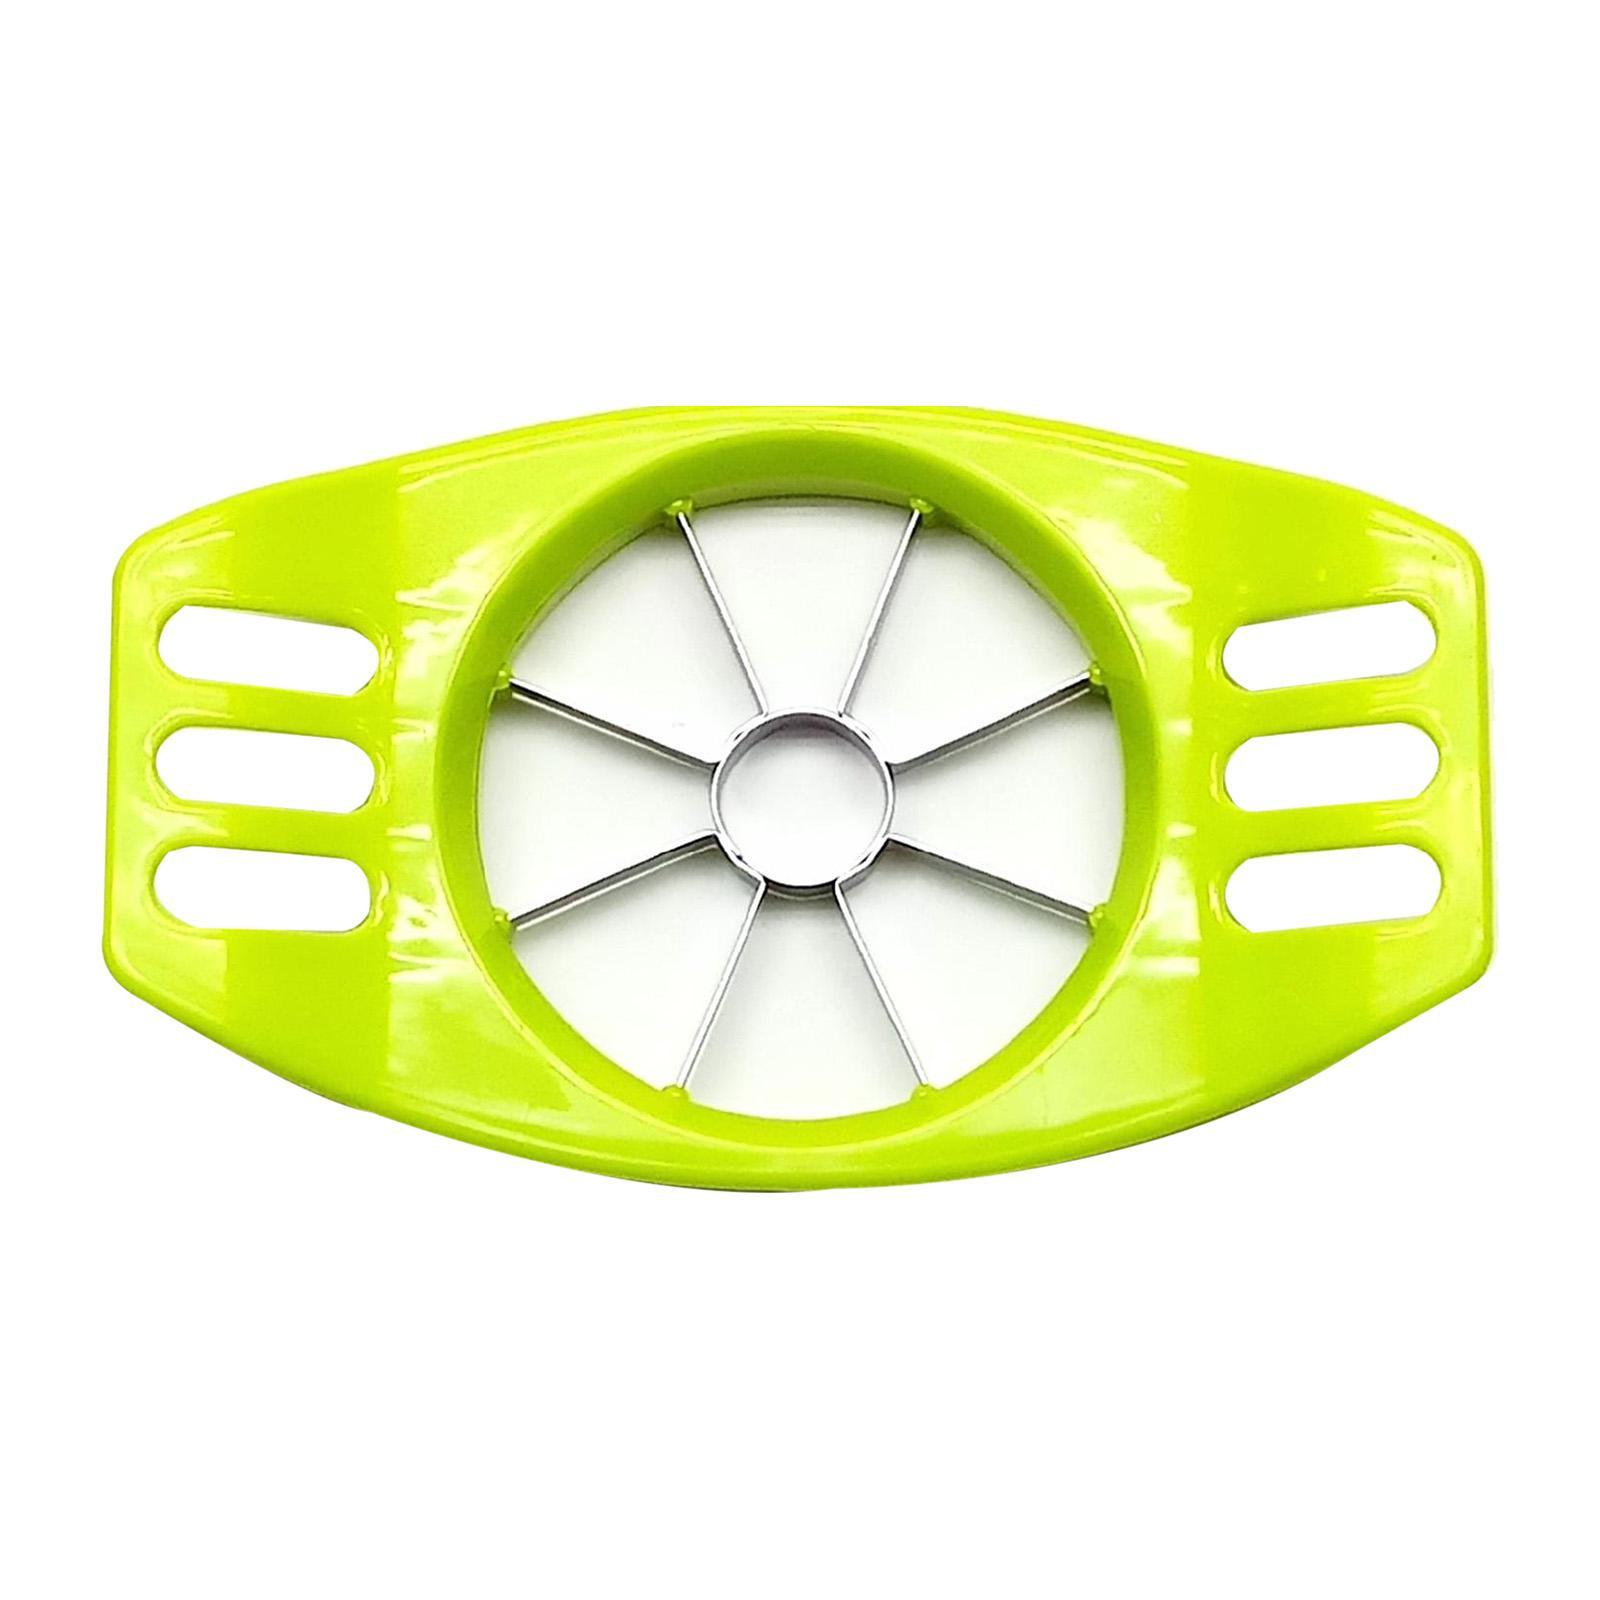 Vesta Apple Slicer And Corer